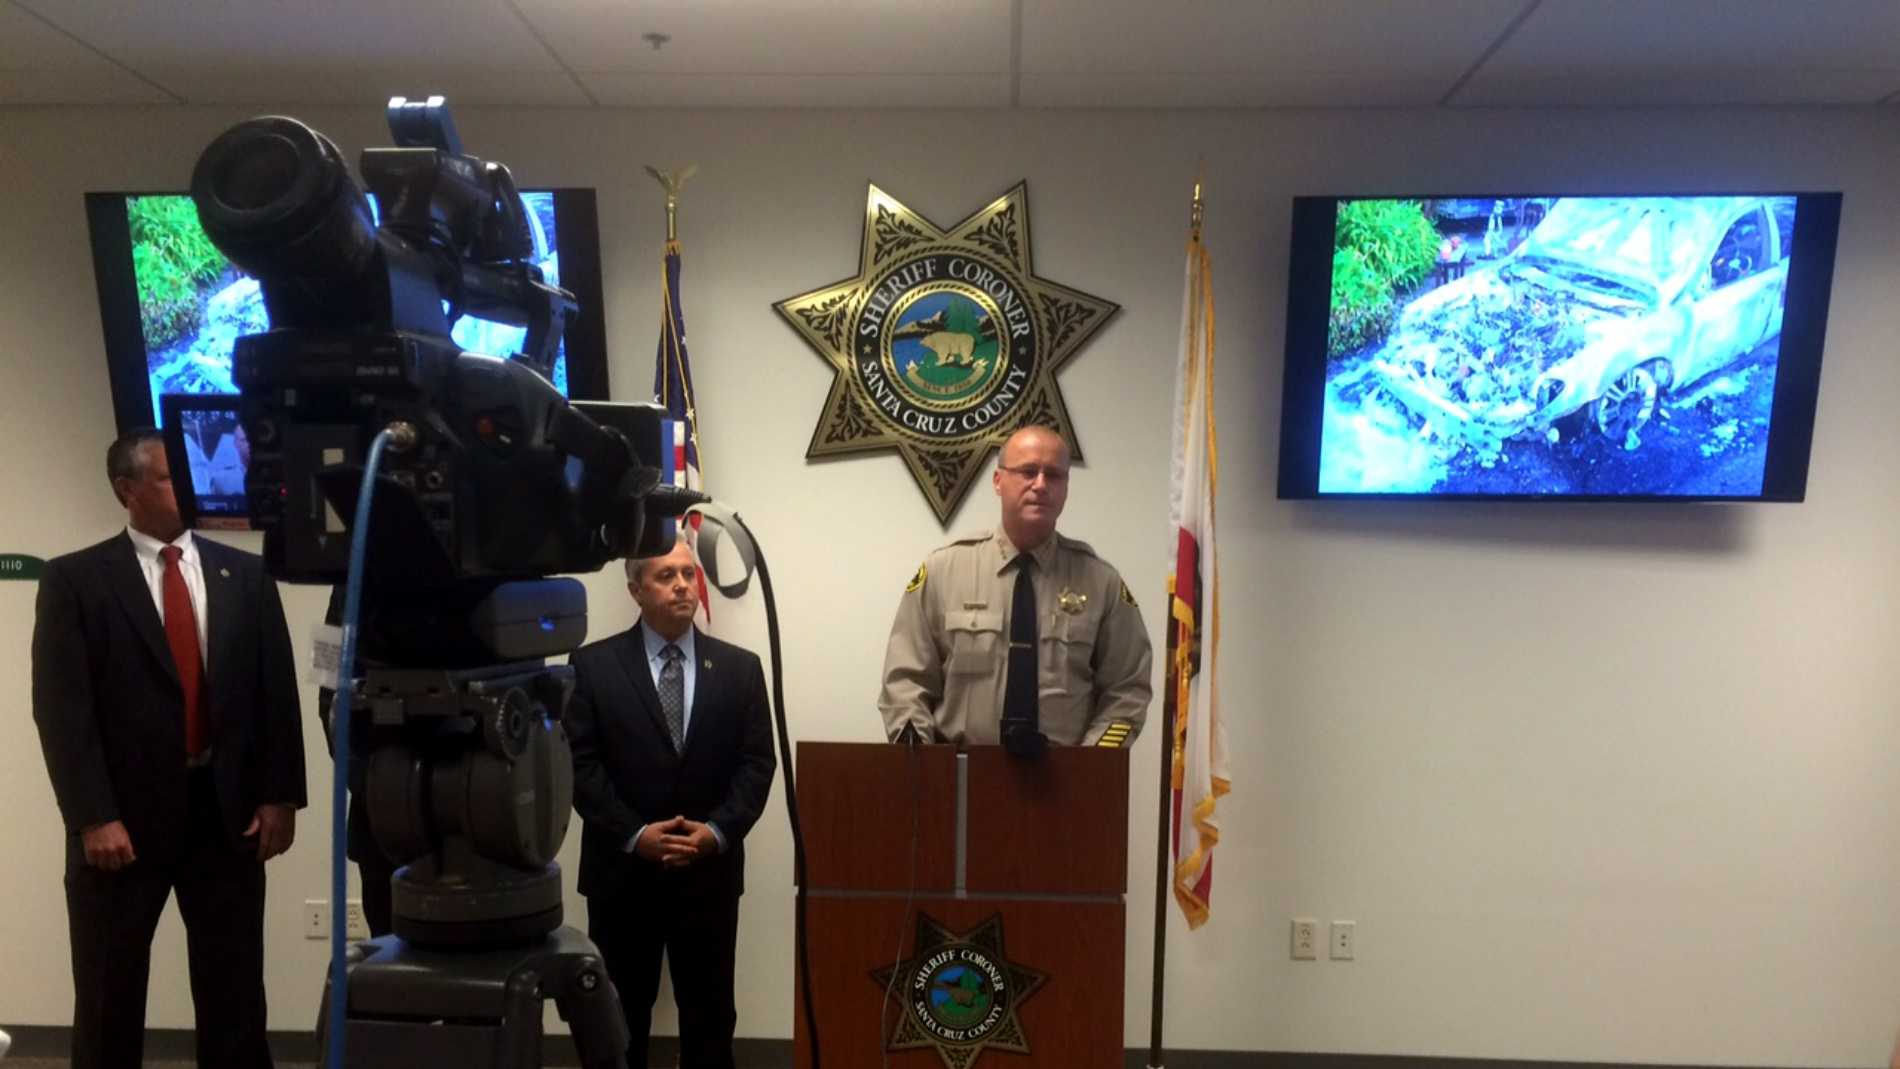 Santa Cruz County Sheriff, Jim Hart announcing the arrests.